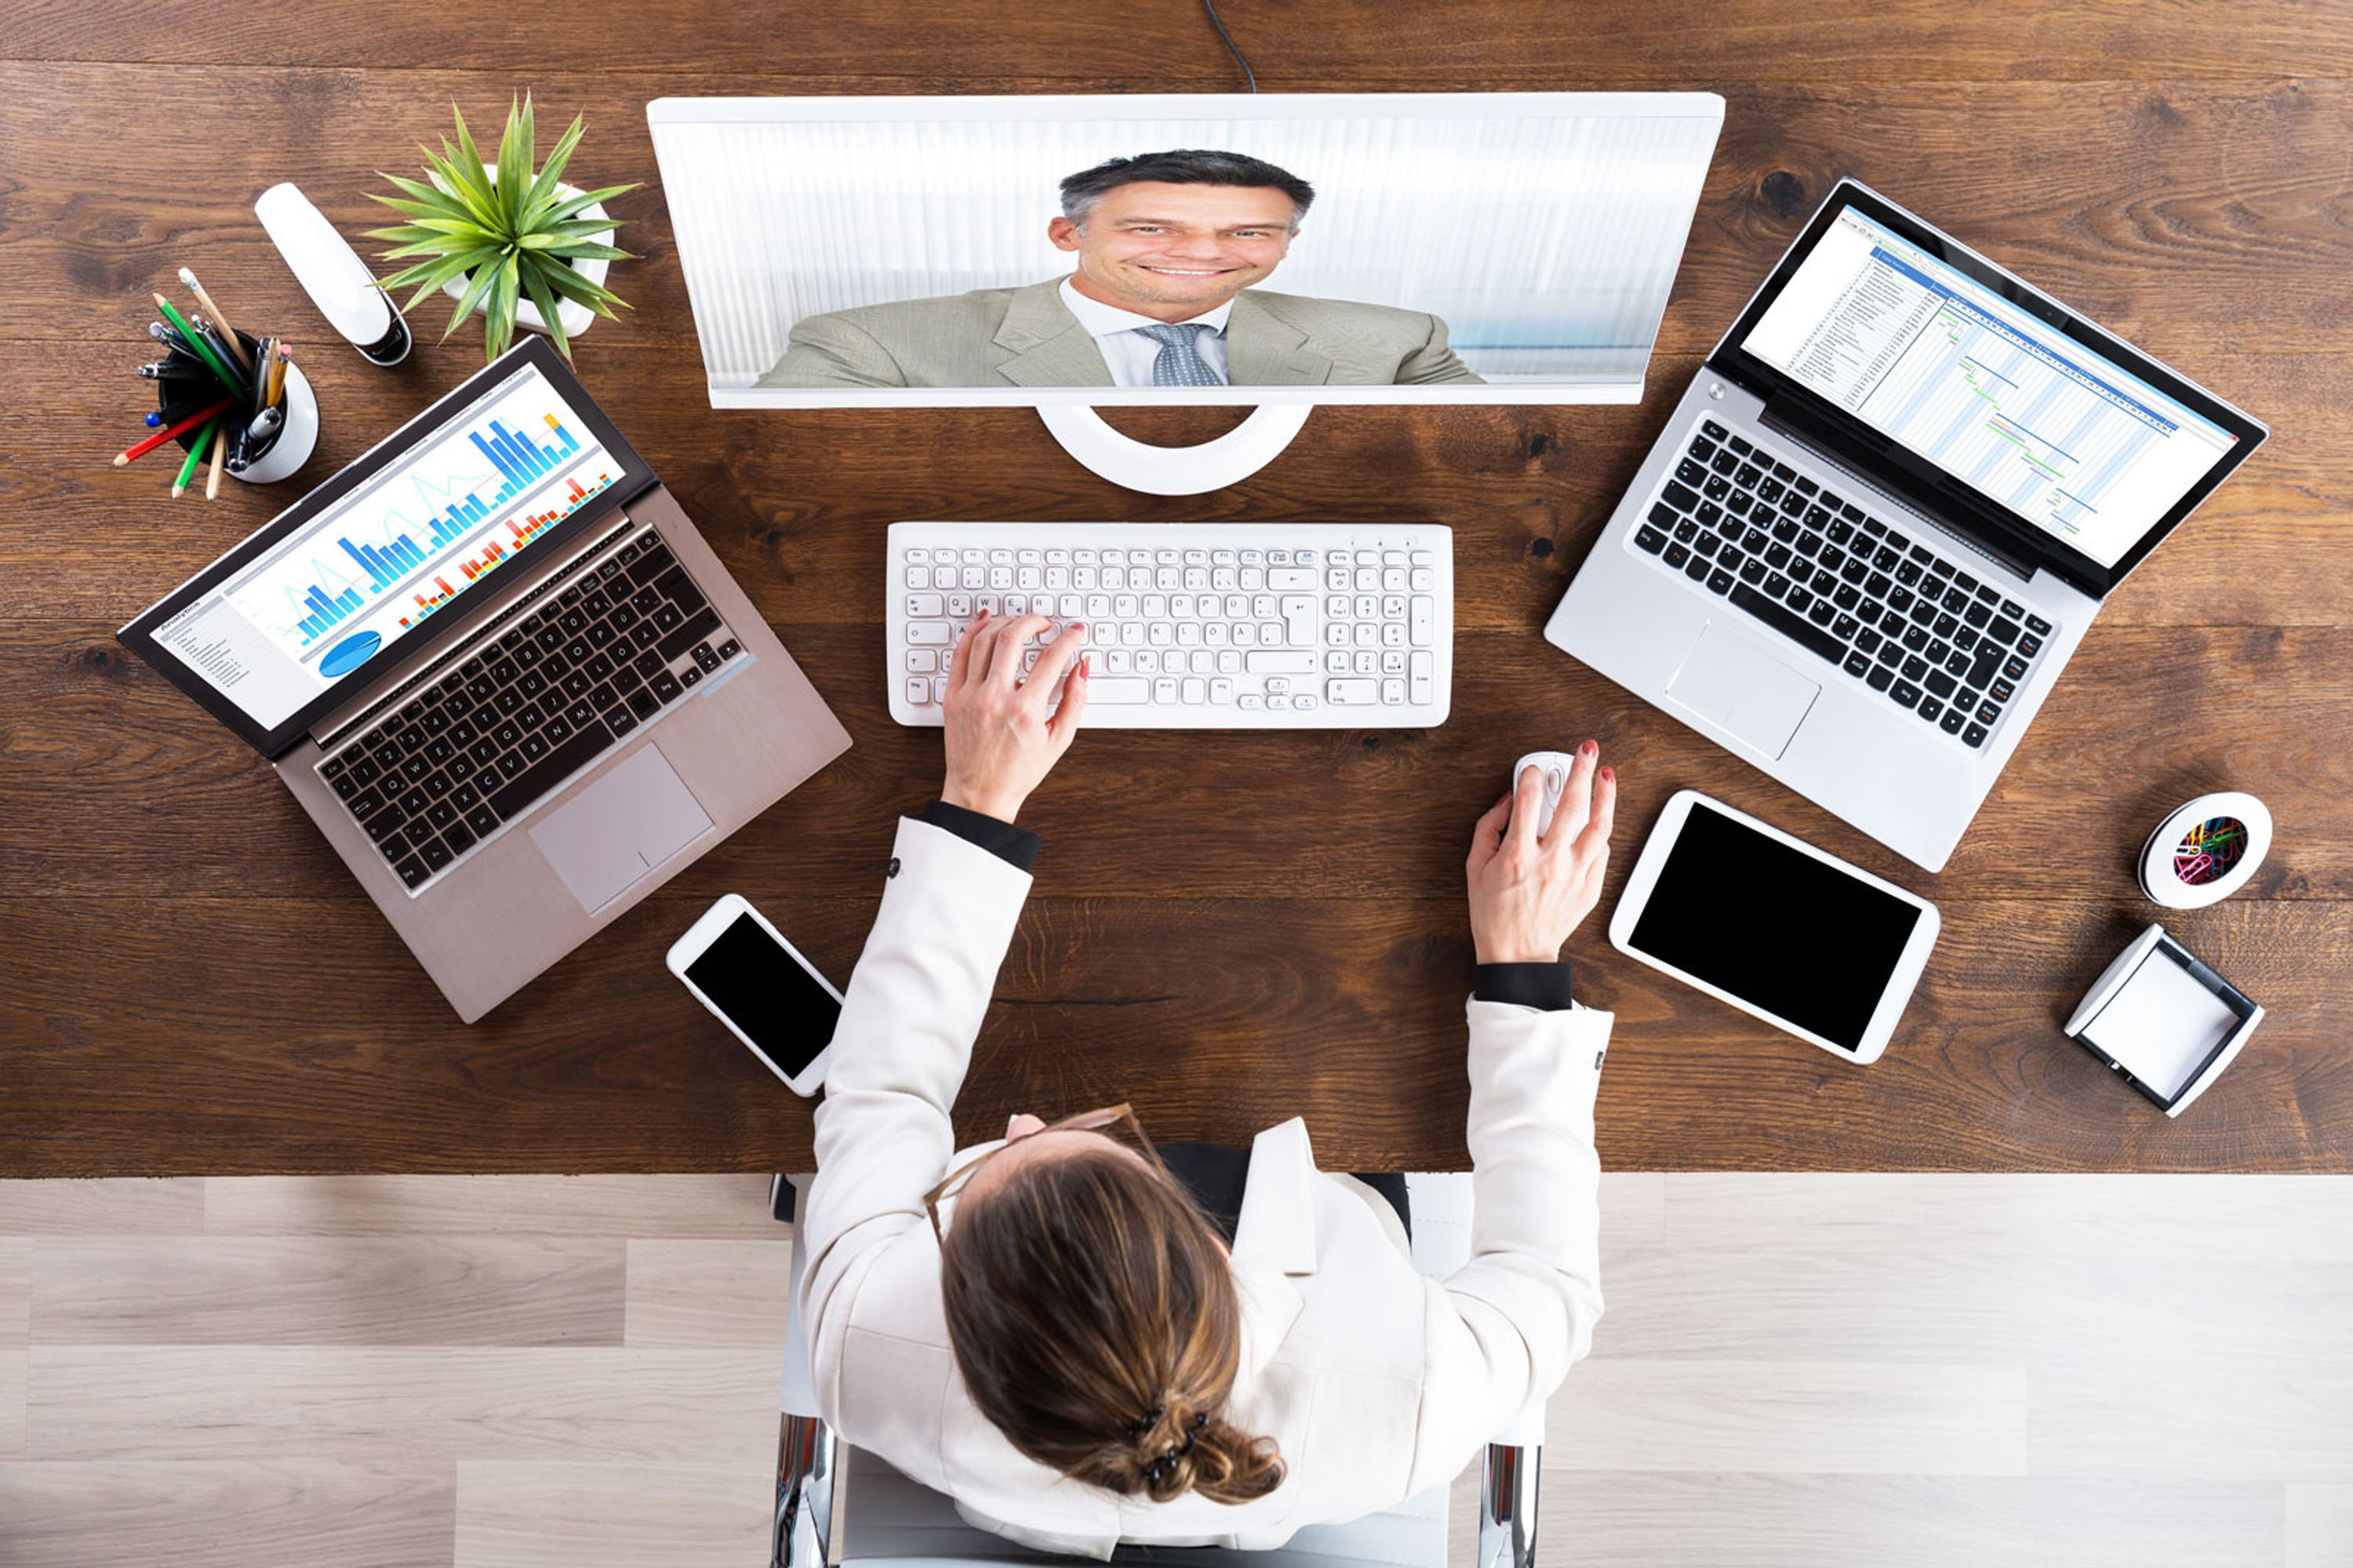 Domestic video conferencing solution, web.tv can be used for many calls from education to business meetings.